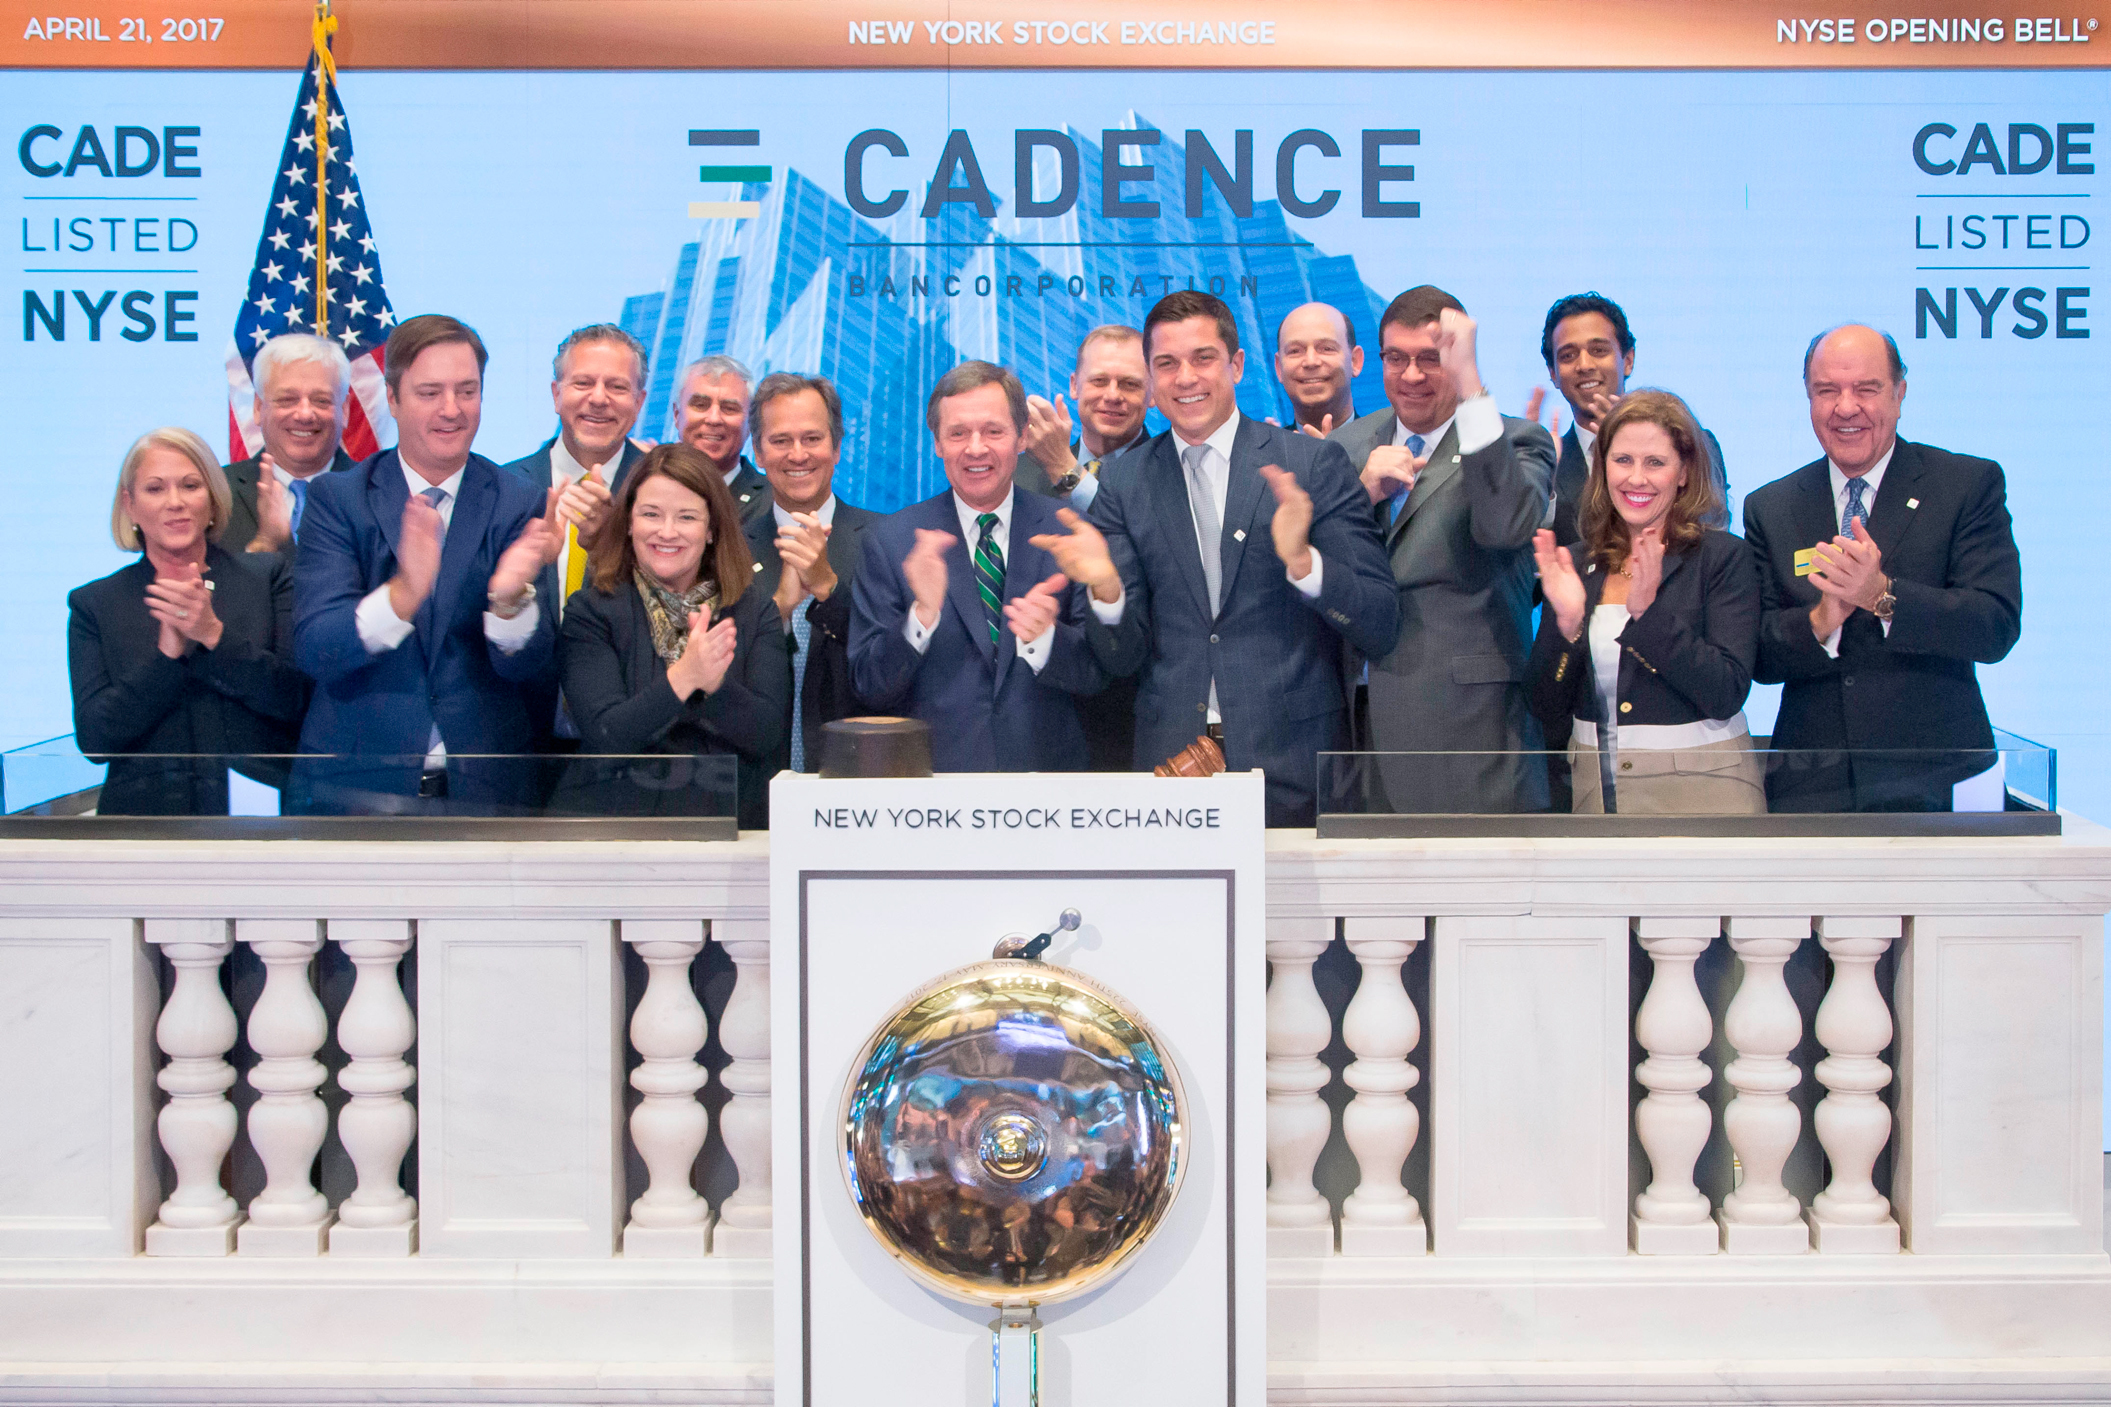 Executives and guests of Cadence Bancorporation (NYSE: CADE) visited the New York Stock Exchange today to commemorate the company's initial public offering and listing on April 13, 2017. In celebration of this occasion, Paul B. Murphy, Jr., chairman and CEO of Cadence Bancorporation, rings the Opening Bell. (Photo Credit: NYSE)